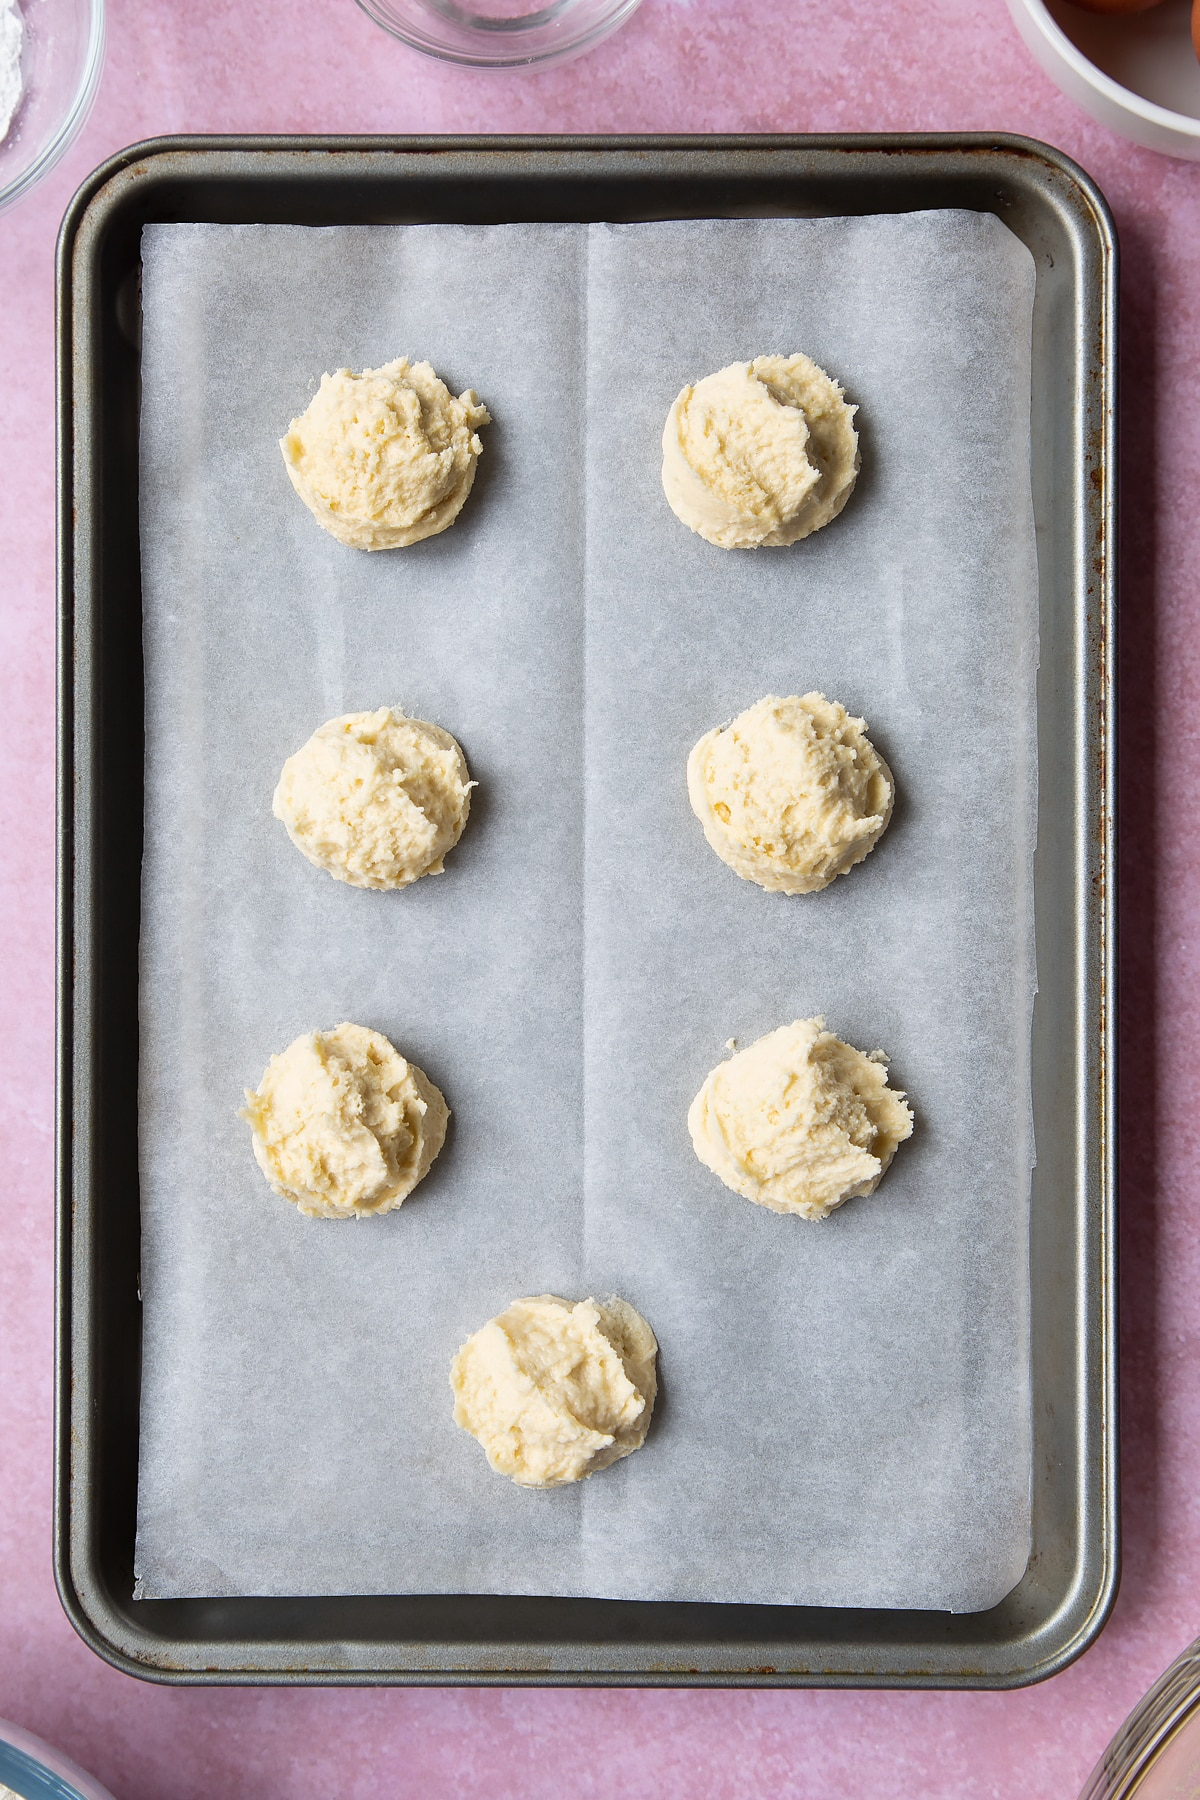 Overhead shot of cookie dough ball in a baking tray